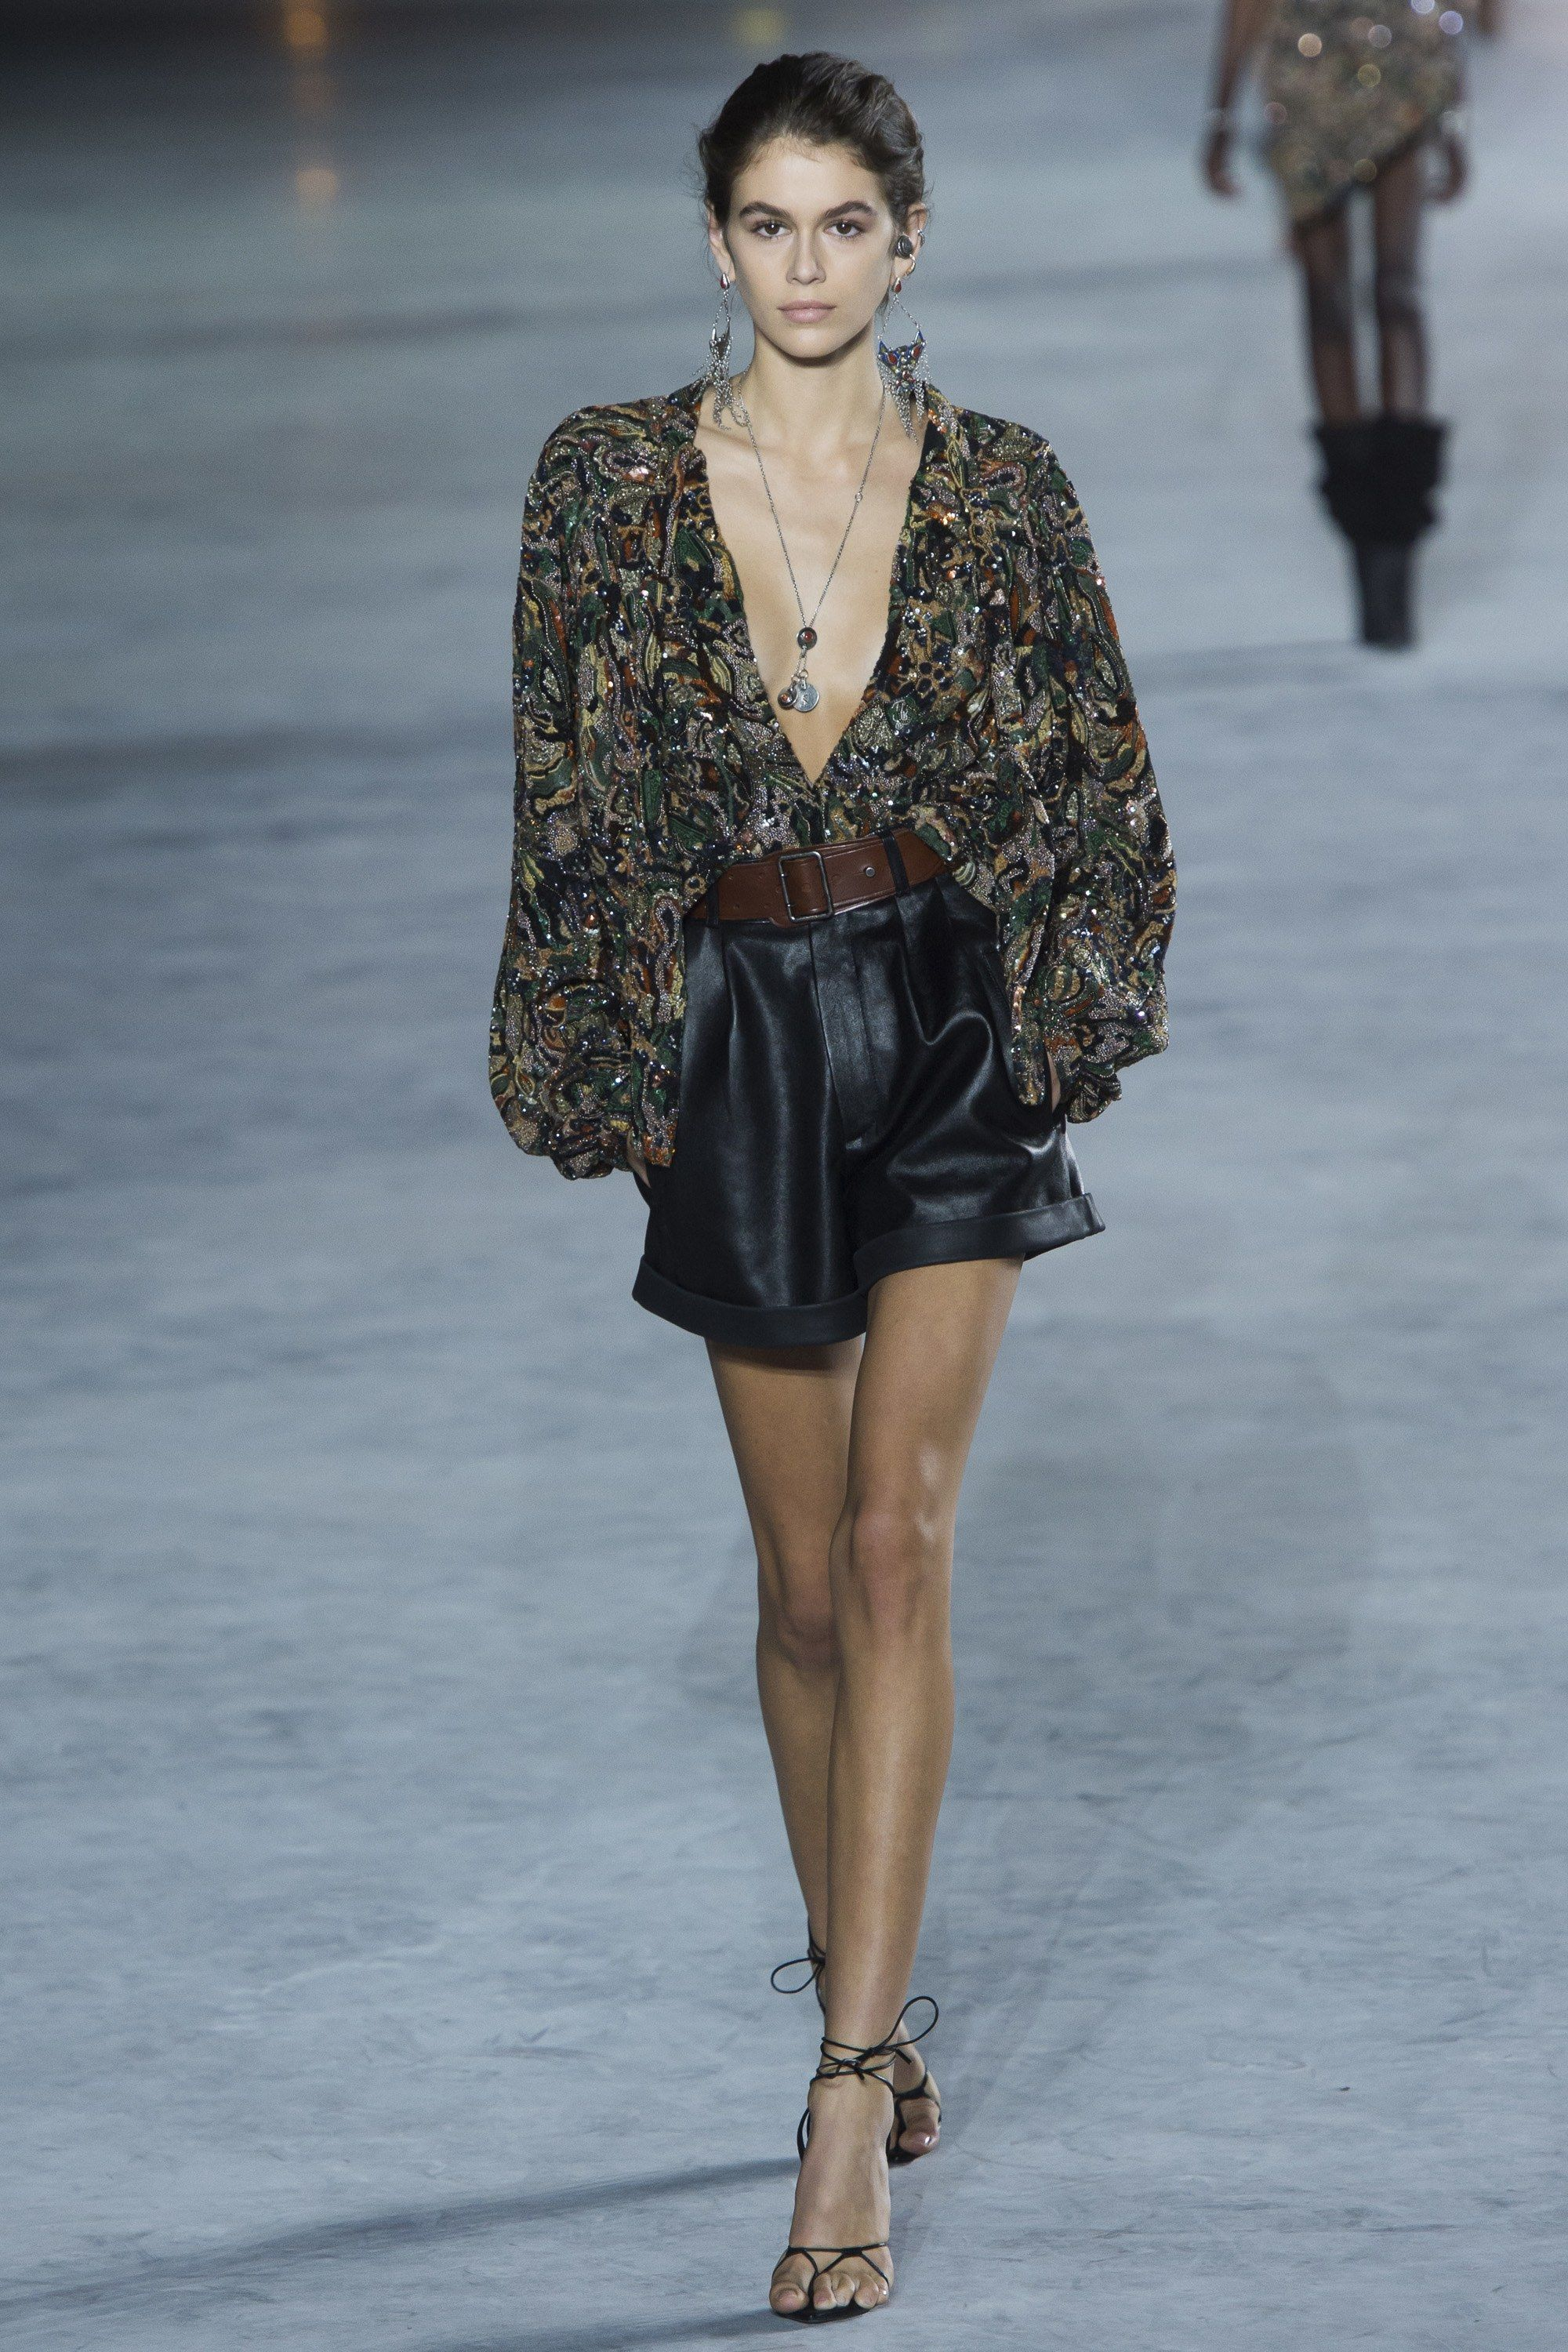 524a2980076 Saint Laurent Spring 2018 Ready-to-Wear Fashion Show in 2019 | Le ...